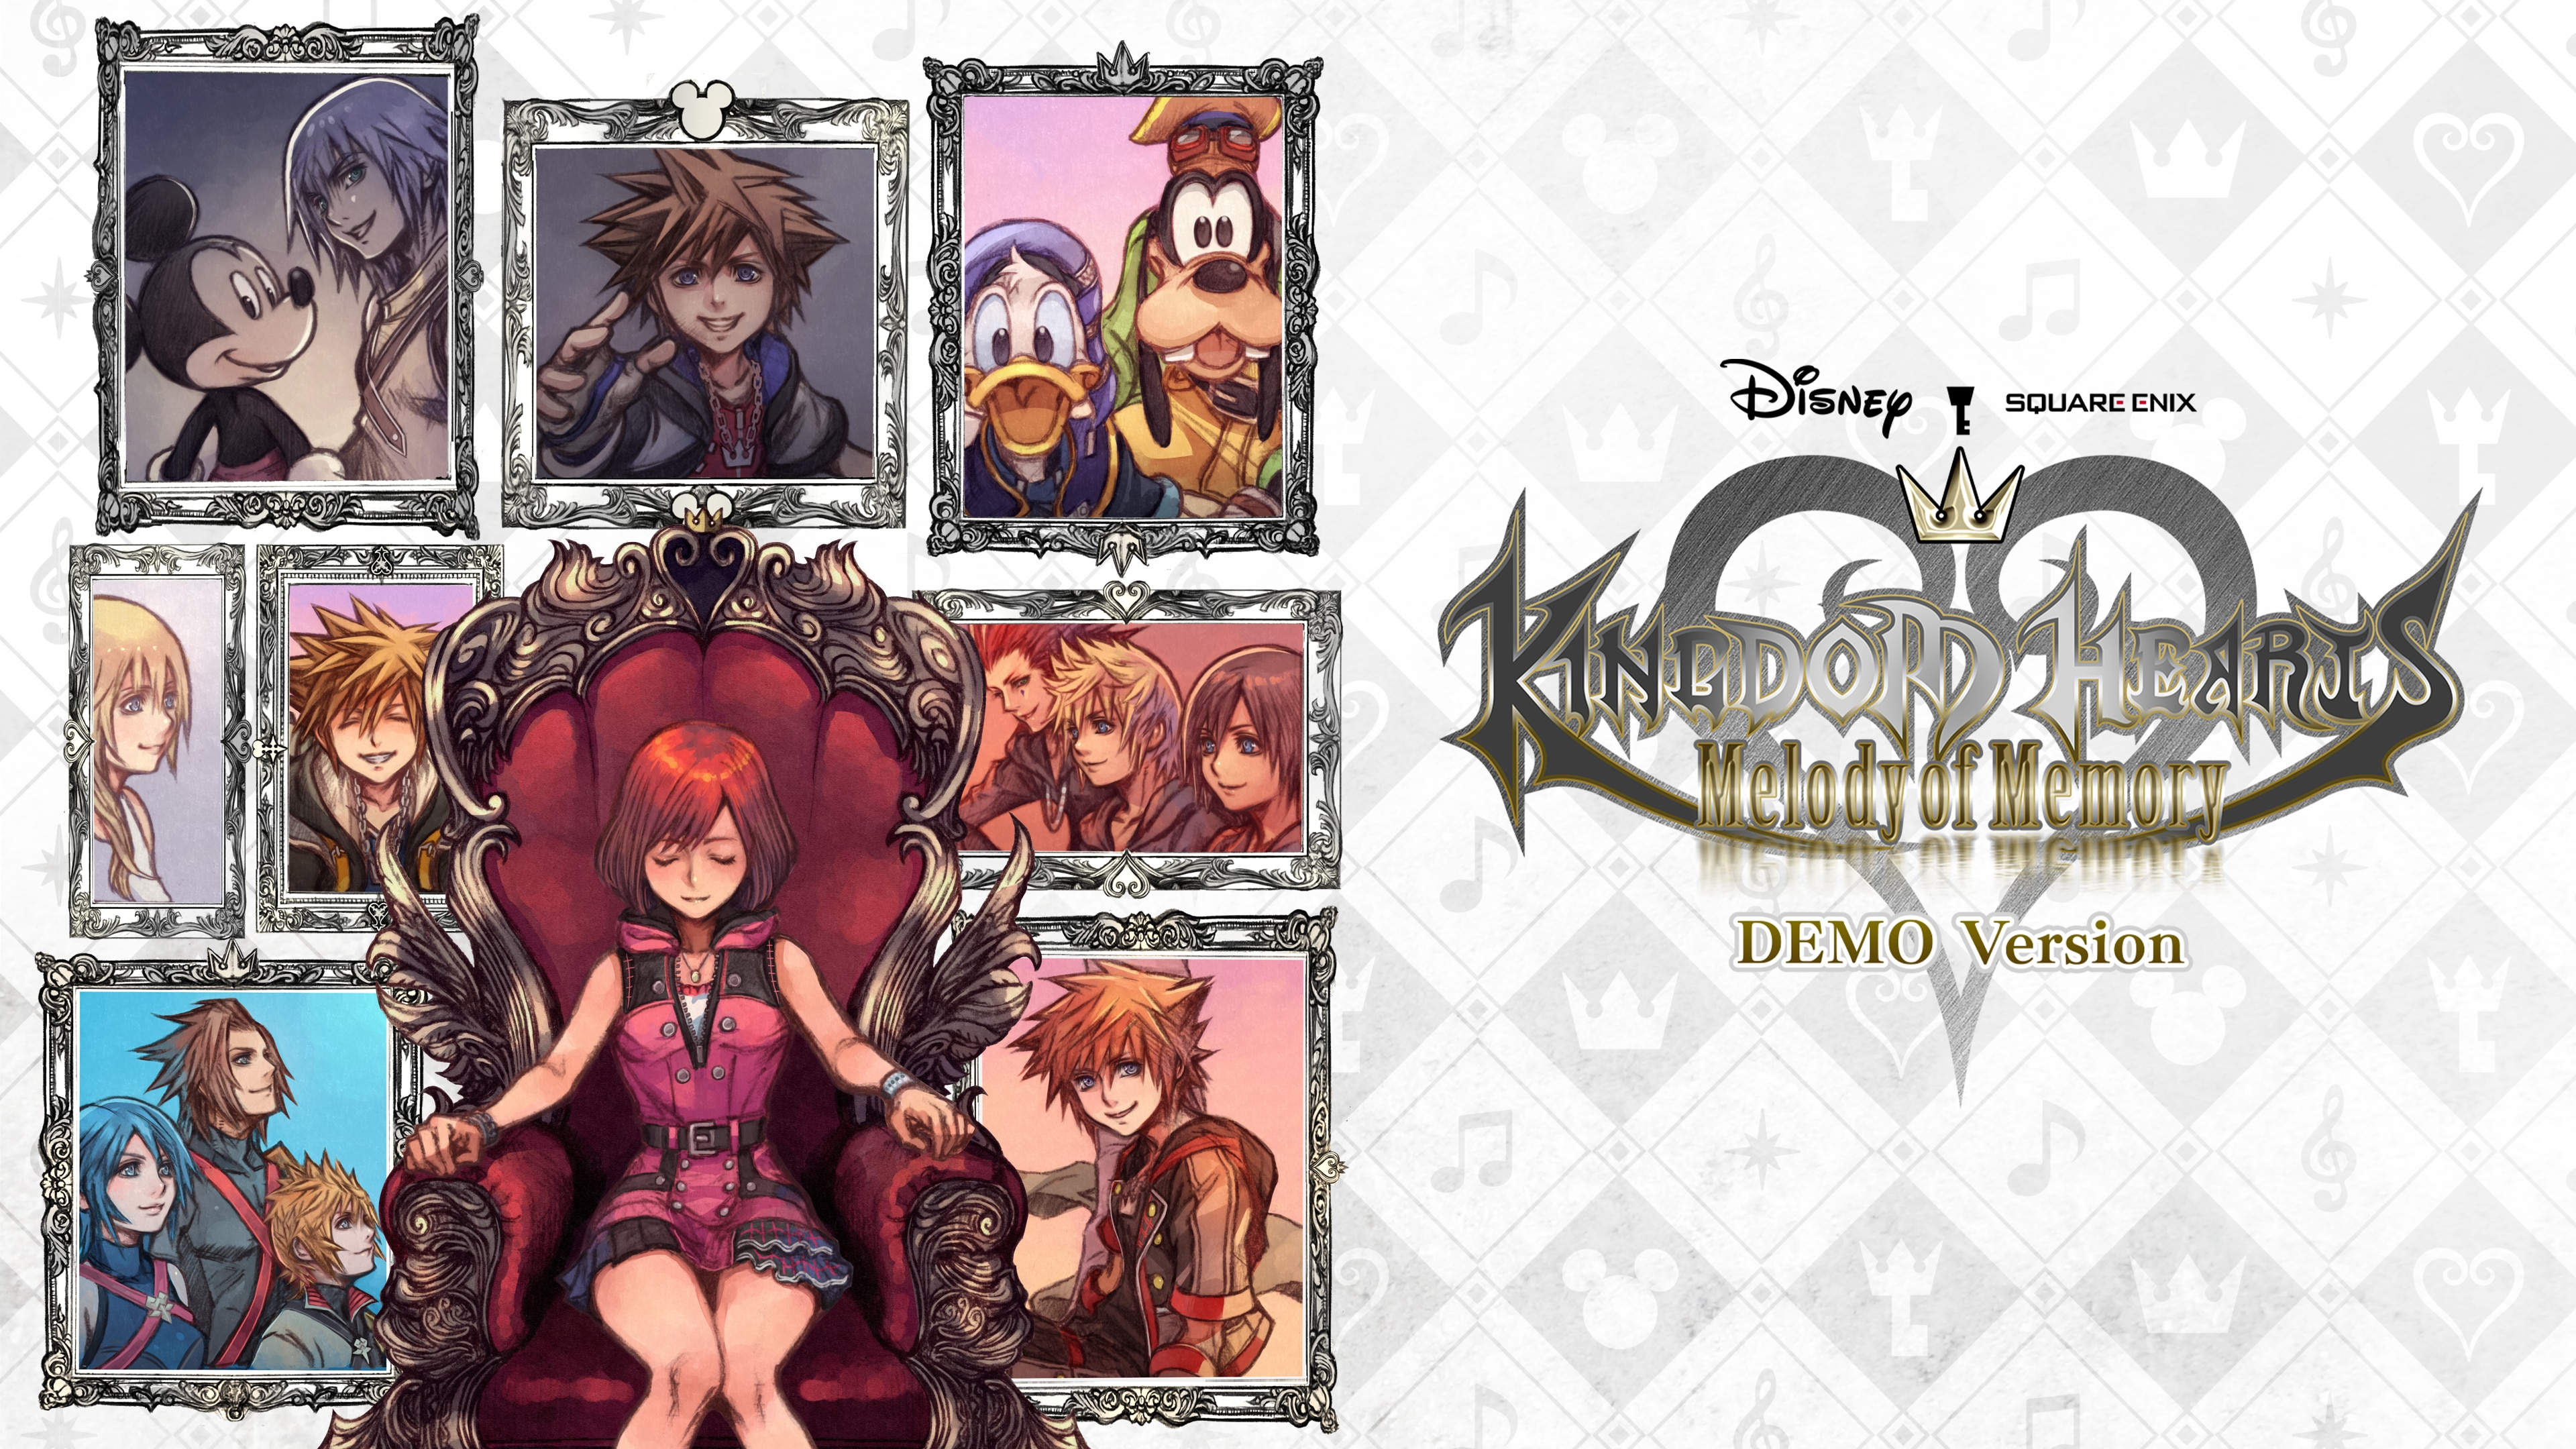 KINGDOM HEARTS Melody of Memory DEMO Version